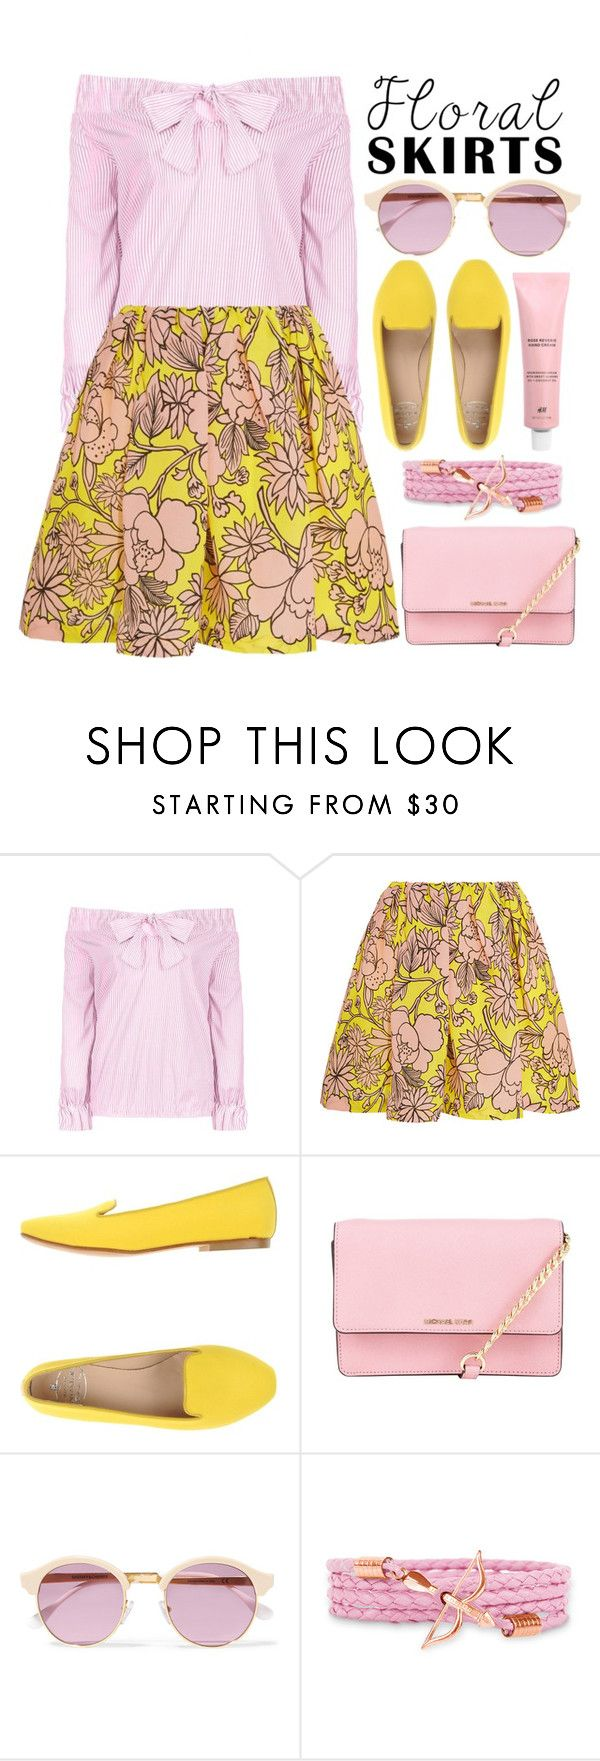 """Summer in my Floral Skirt"" by alaria ❤ liked on Polyvore featuring MSGM, SANTA CLARA Milano, MICHAEL Michael Kors, Sheriff&Cherry and Floralskirts"